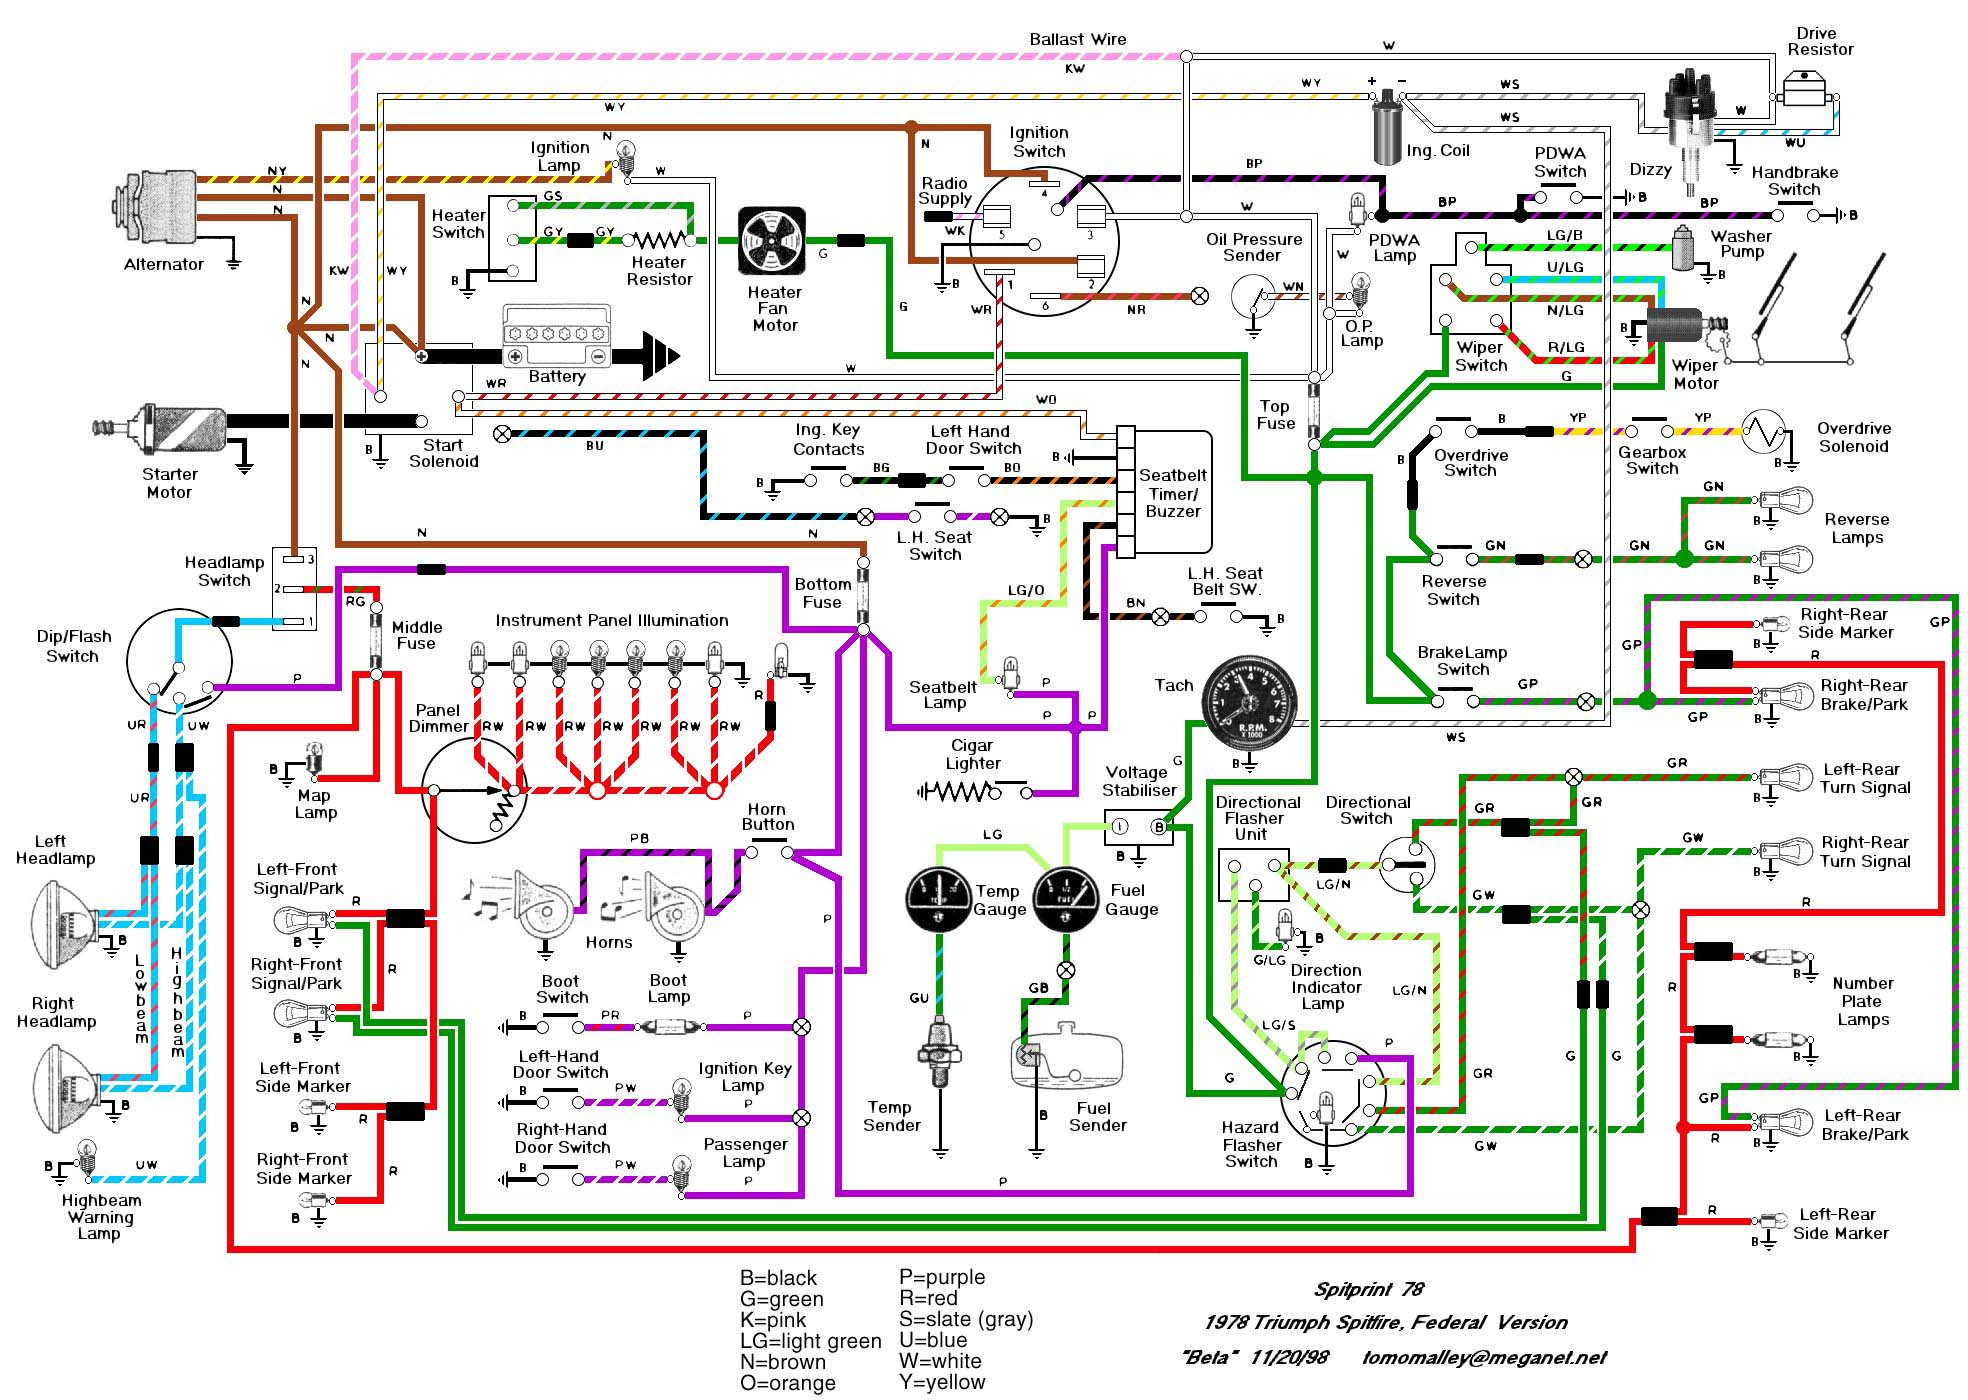 78diagram mk4 wiring diagram mk4 tdi wiring diagram \u2022 wiring diagrams j ford cortina wiring diagram at webbmarketing.co